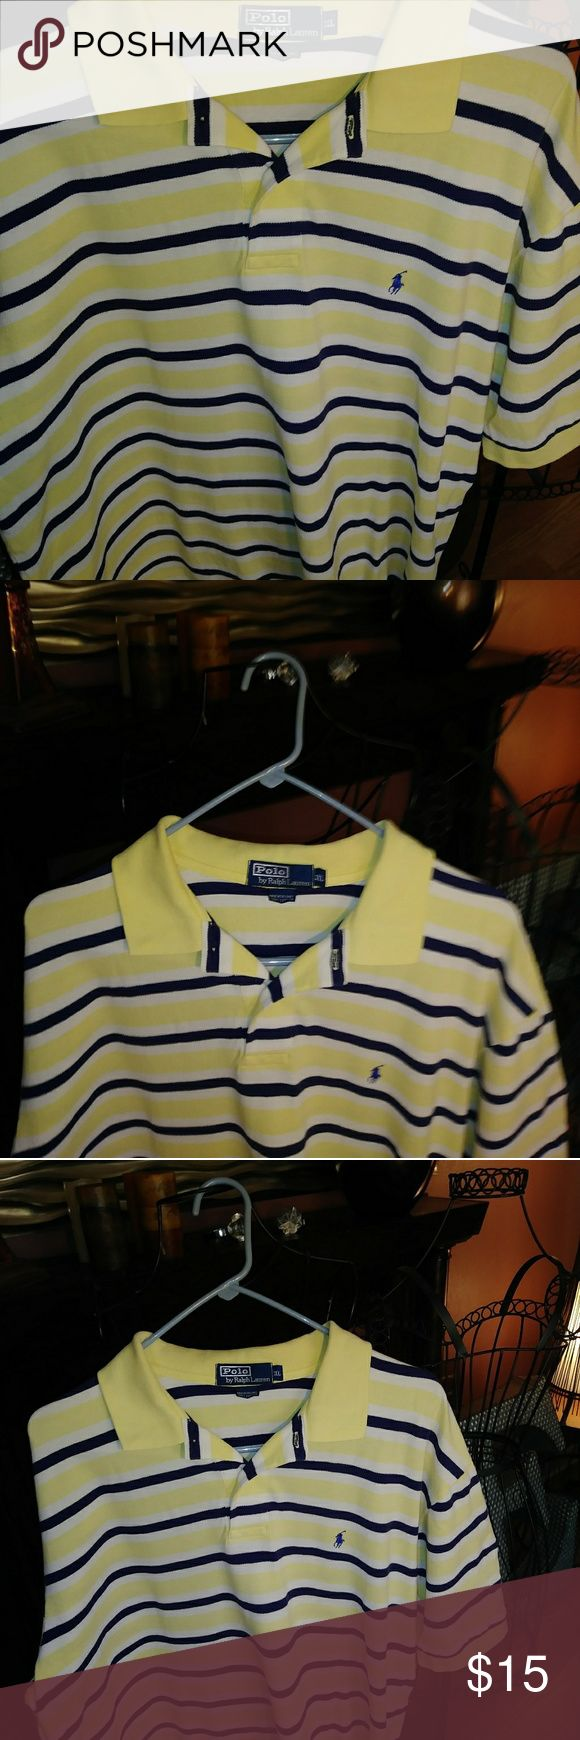 RALPH LAUREN POLO SHIRT YELLOW WITH BLUE STRIPES.....THIS SHIRT IS IN EXCELLENT CONDITION......NO RIPS NO TEARS....NO STAINS  AT BEST THIS SHIRT ONLY NEEDS STEAM PRESSING OR A CLEANERS PRESS Ralph Lauren Shirts Polos